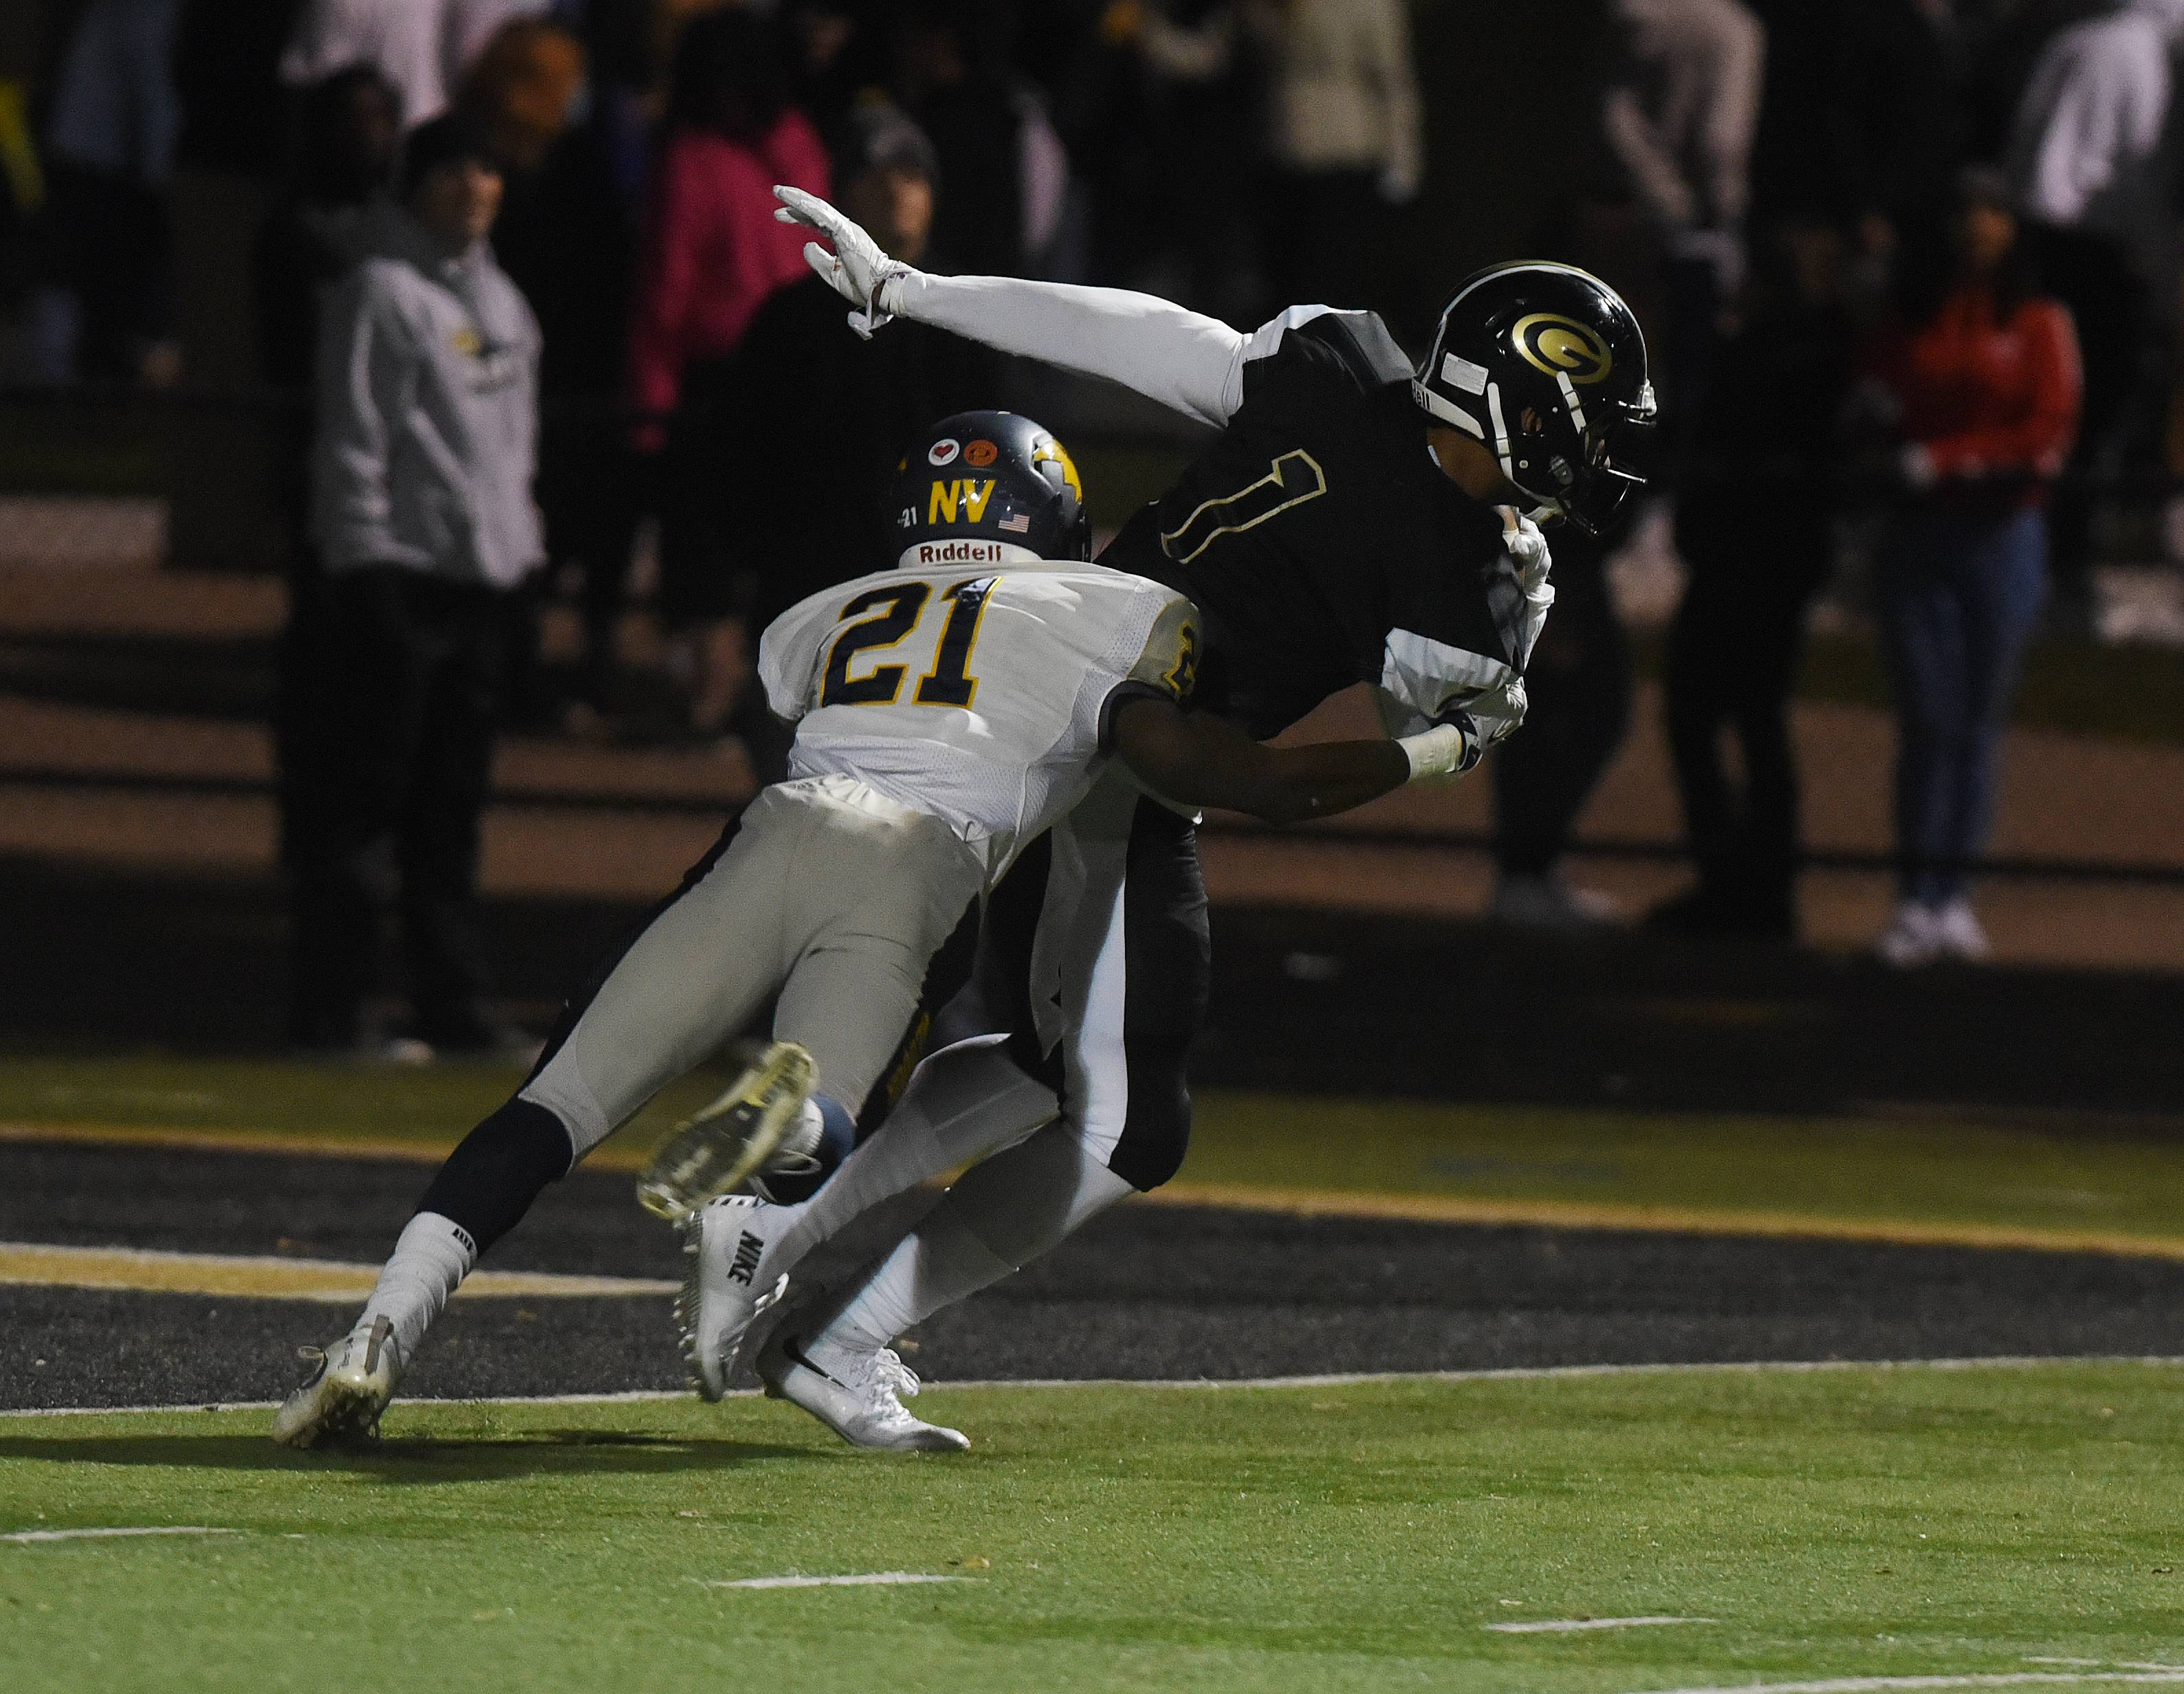 Glenbard North grabs Neuqua Valley's momentum